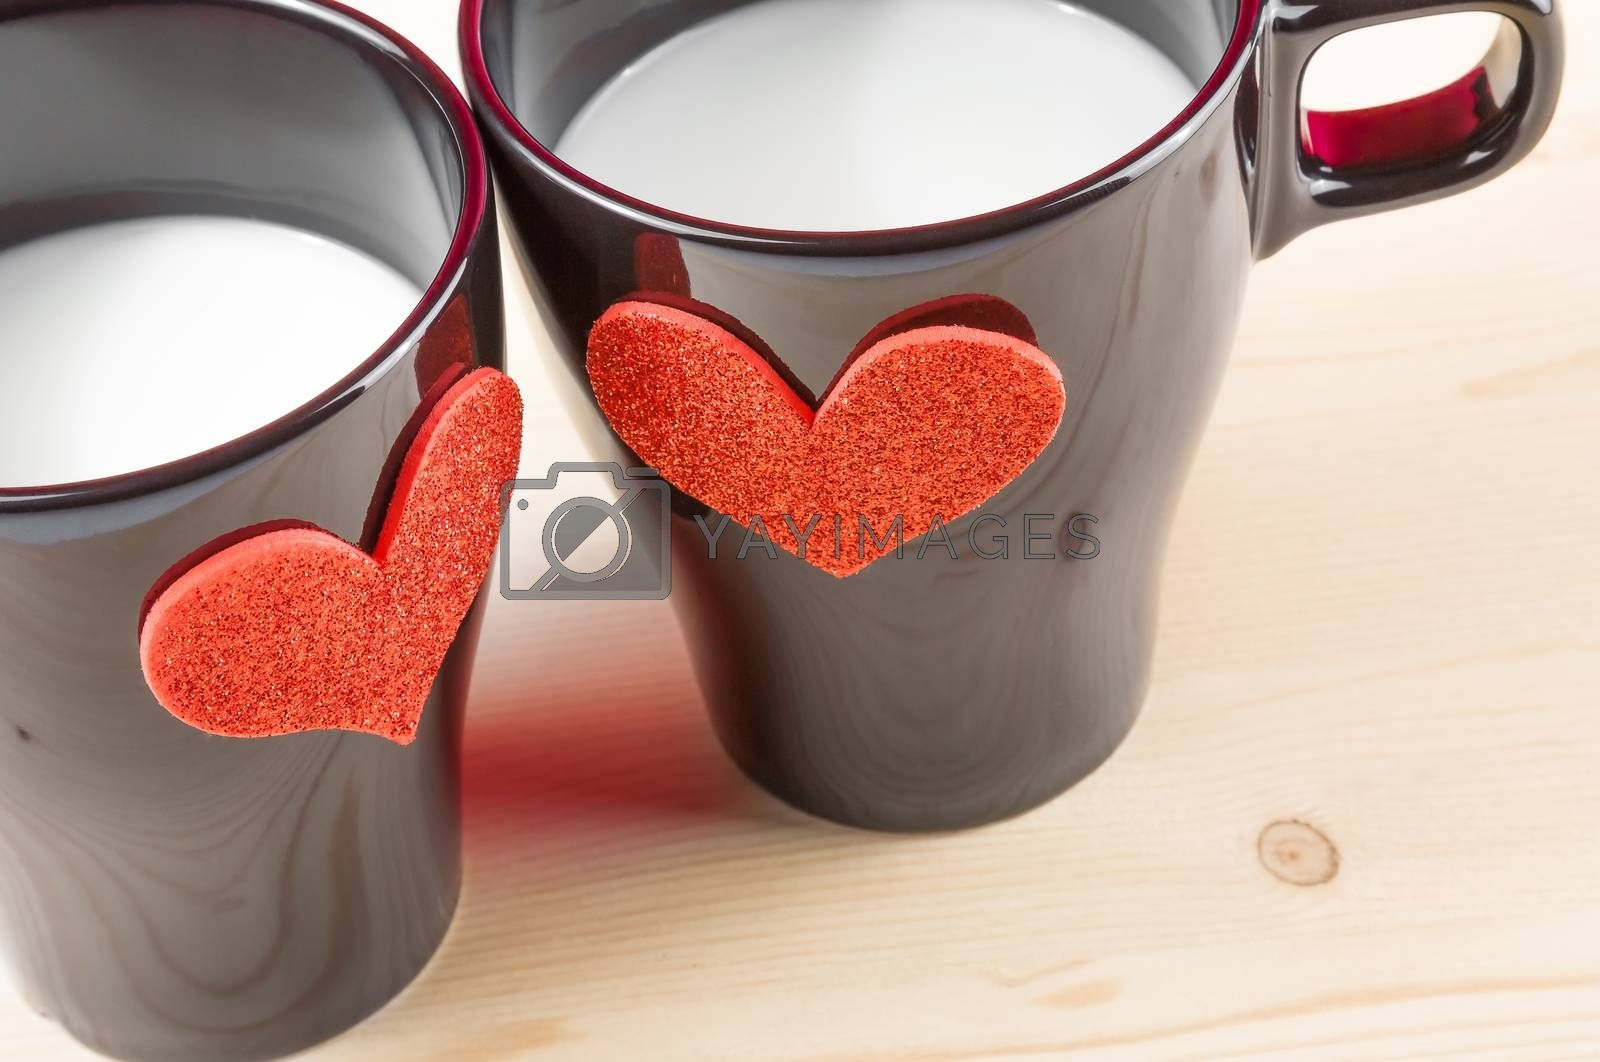 Royalty free image of cups of milk with decorative hearts on wood table, concept of valentine day by donfiore